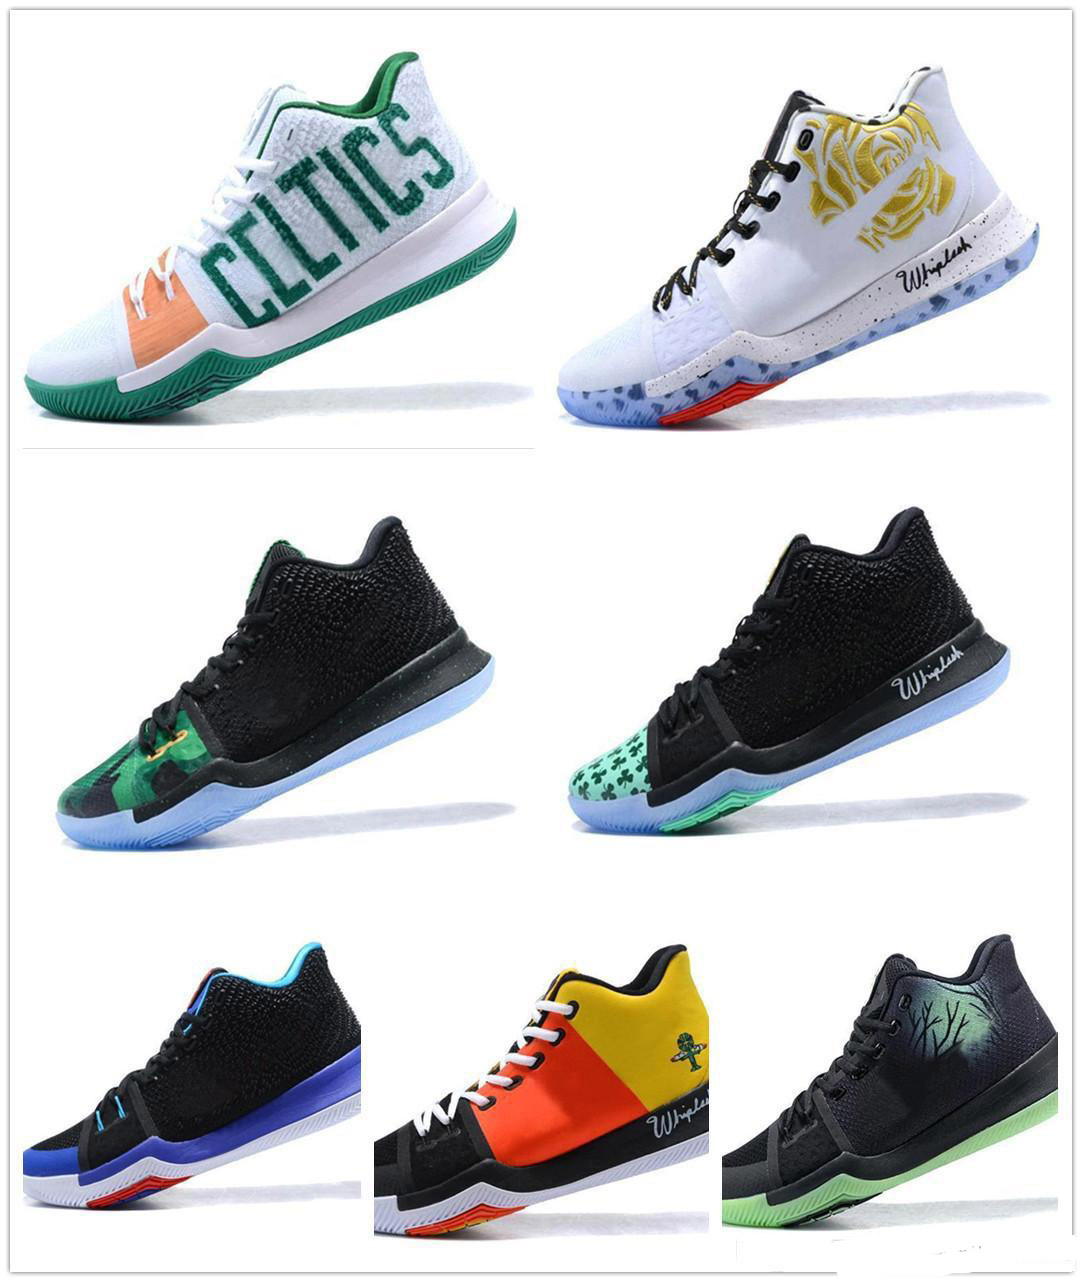 2019 High Quality  #3 Mans Basket Shoes Classic Basketball Shoes Mamba Mentality Signature Shoes Outdoor Sports Sneakers2019 High Quality  #3 Mans Basket Shoes Classic Basketball Shoes Mamba Mentality Signature Shoes Outdoor Sports Sneakers